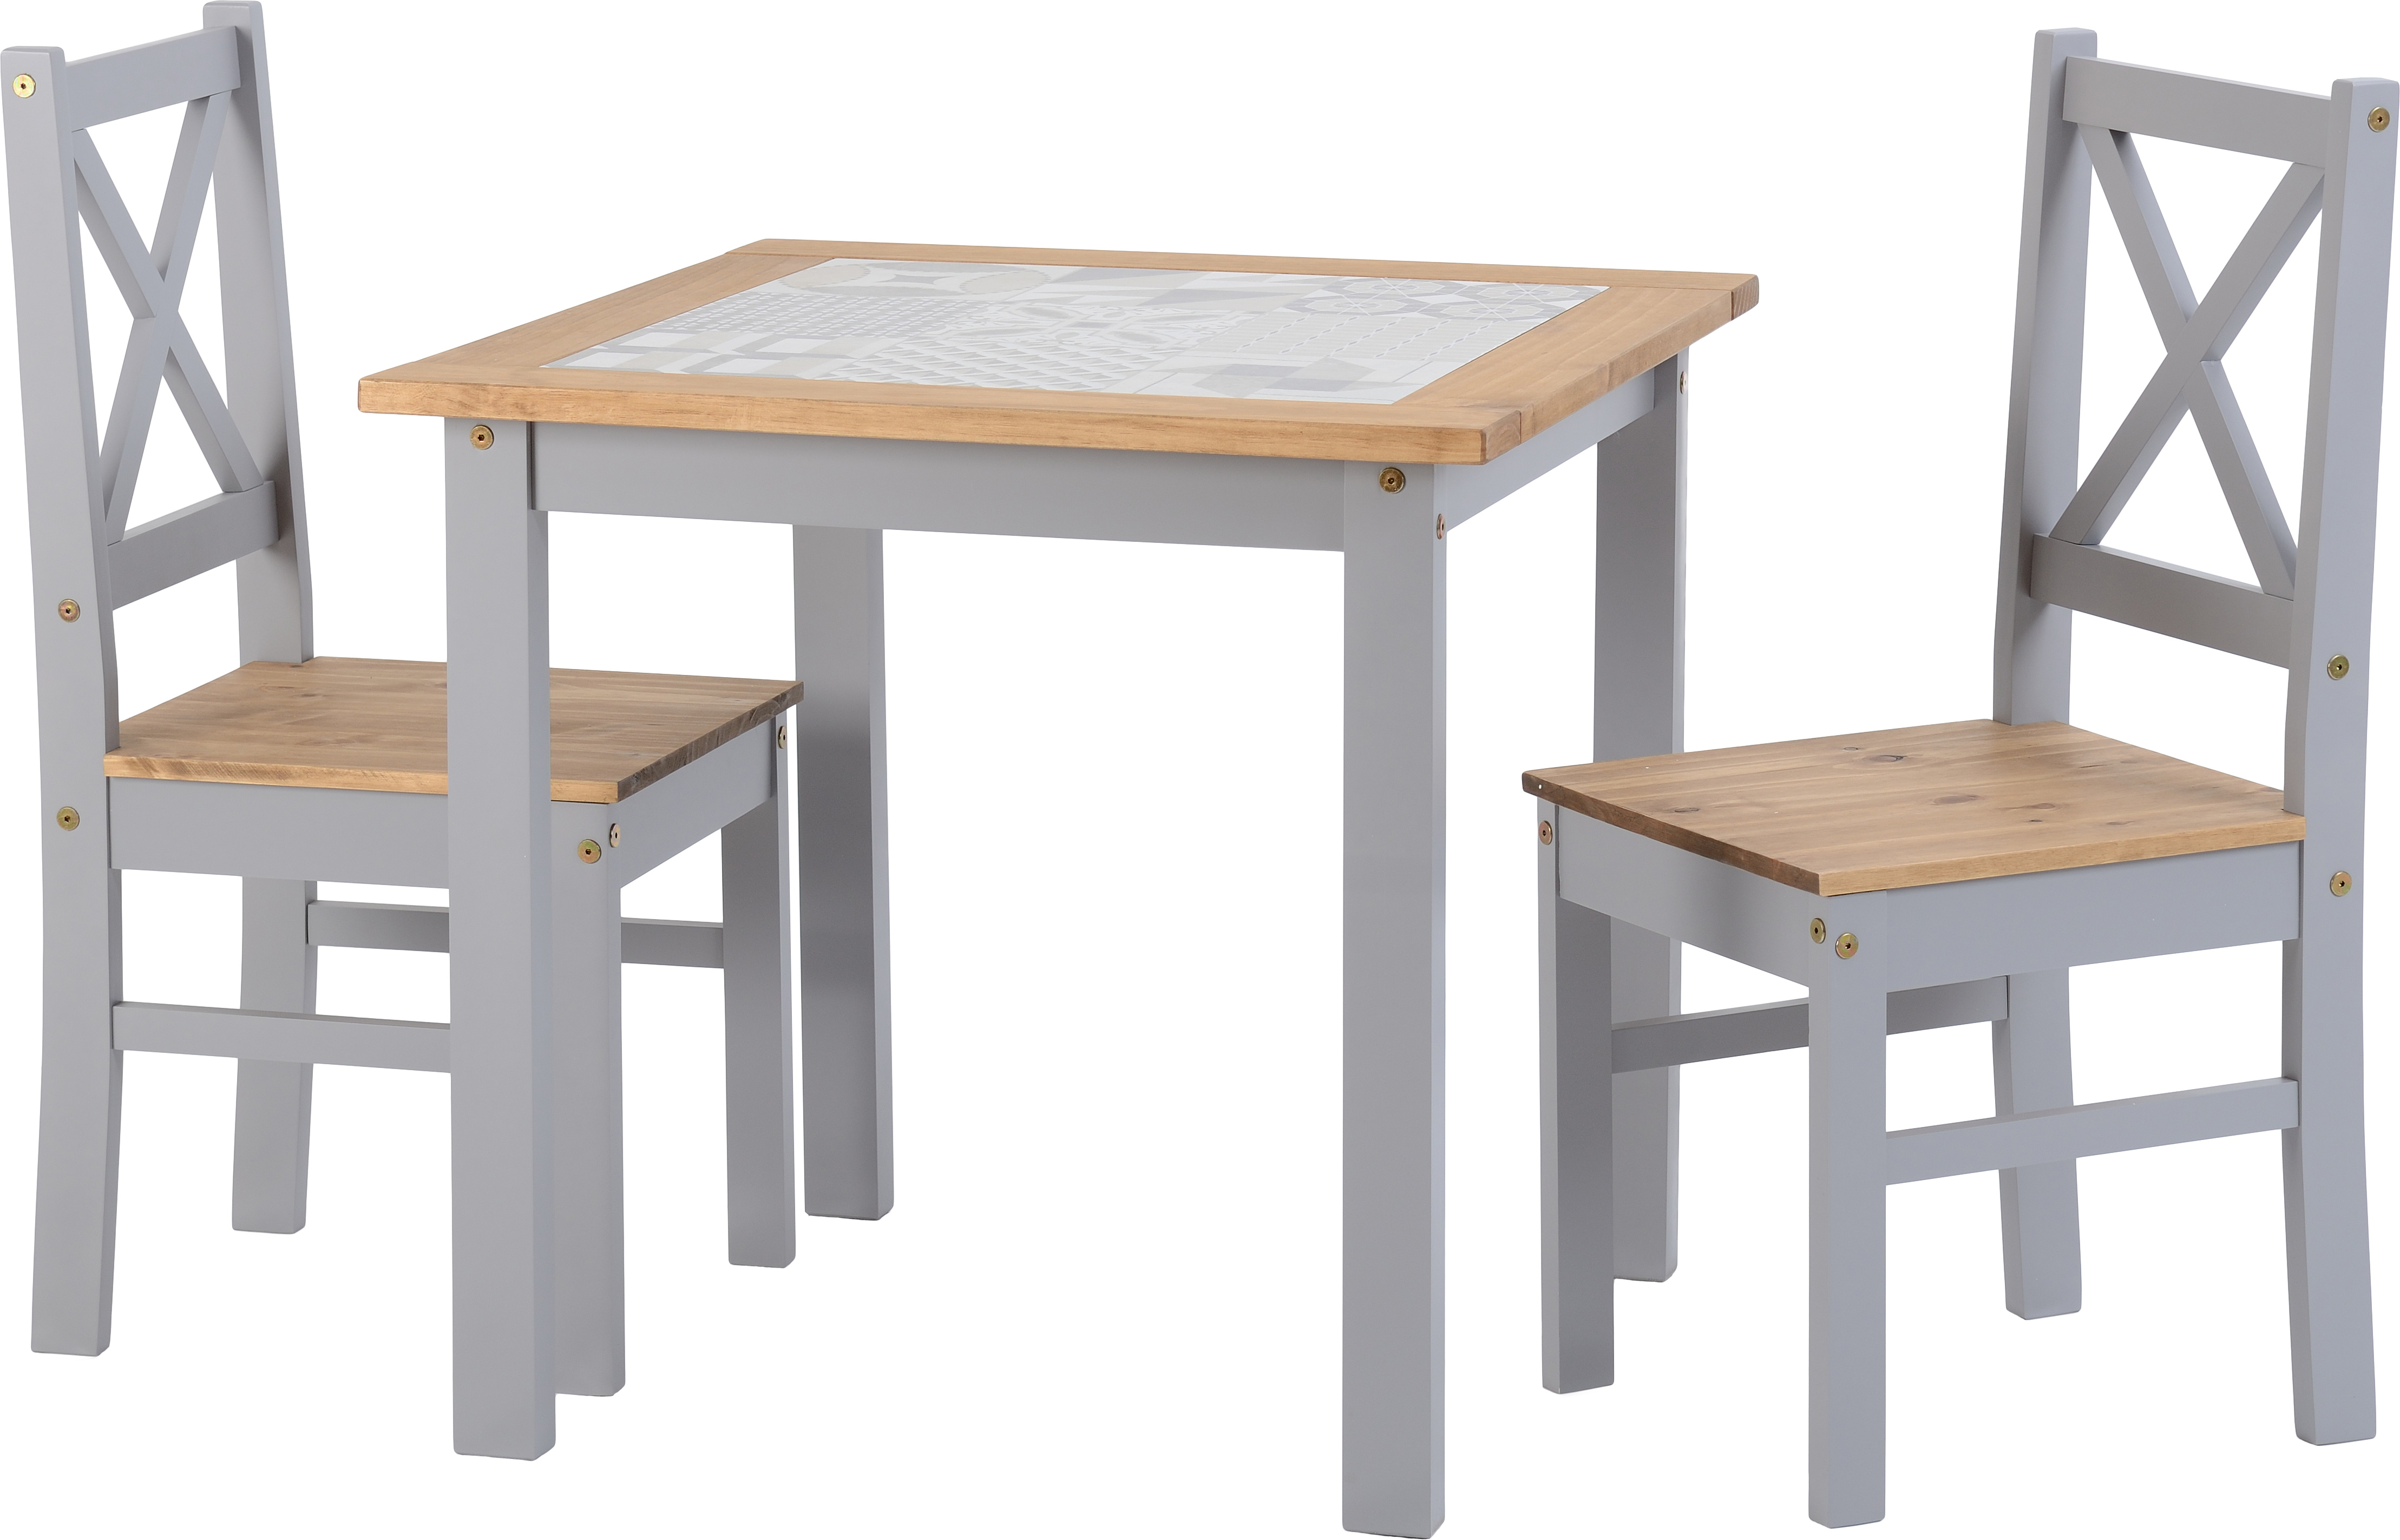 Seconique Ceramic Tile Top Dining Set Table 2 Chairs Grey Pine